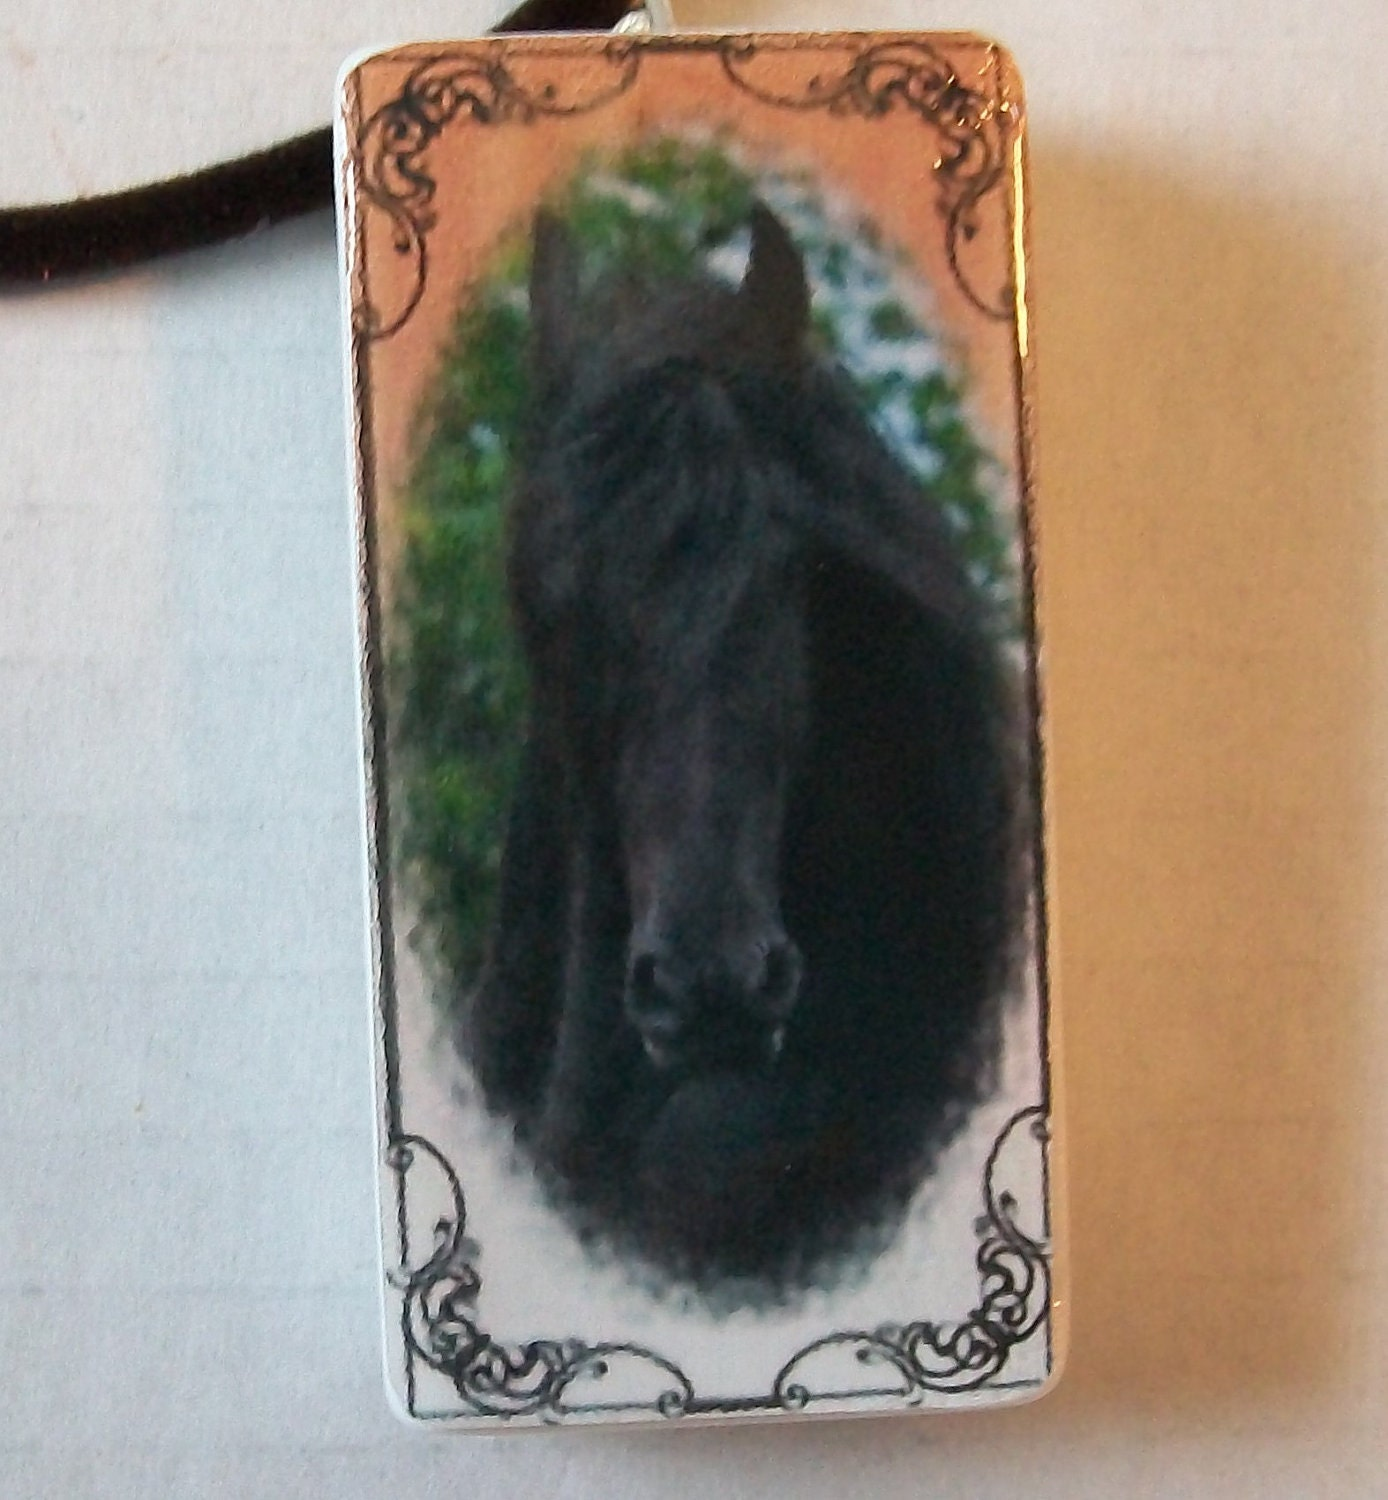 Black Stallion Domino Pendant